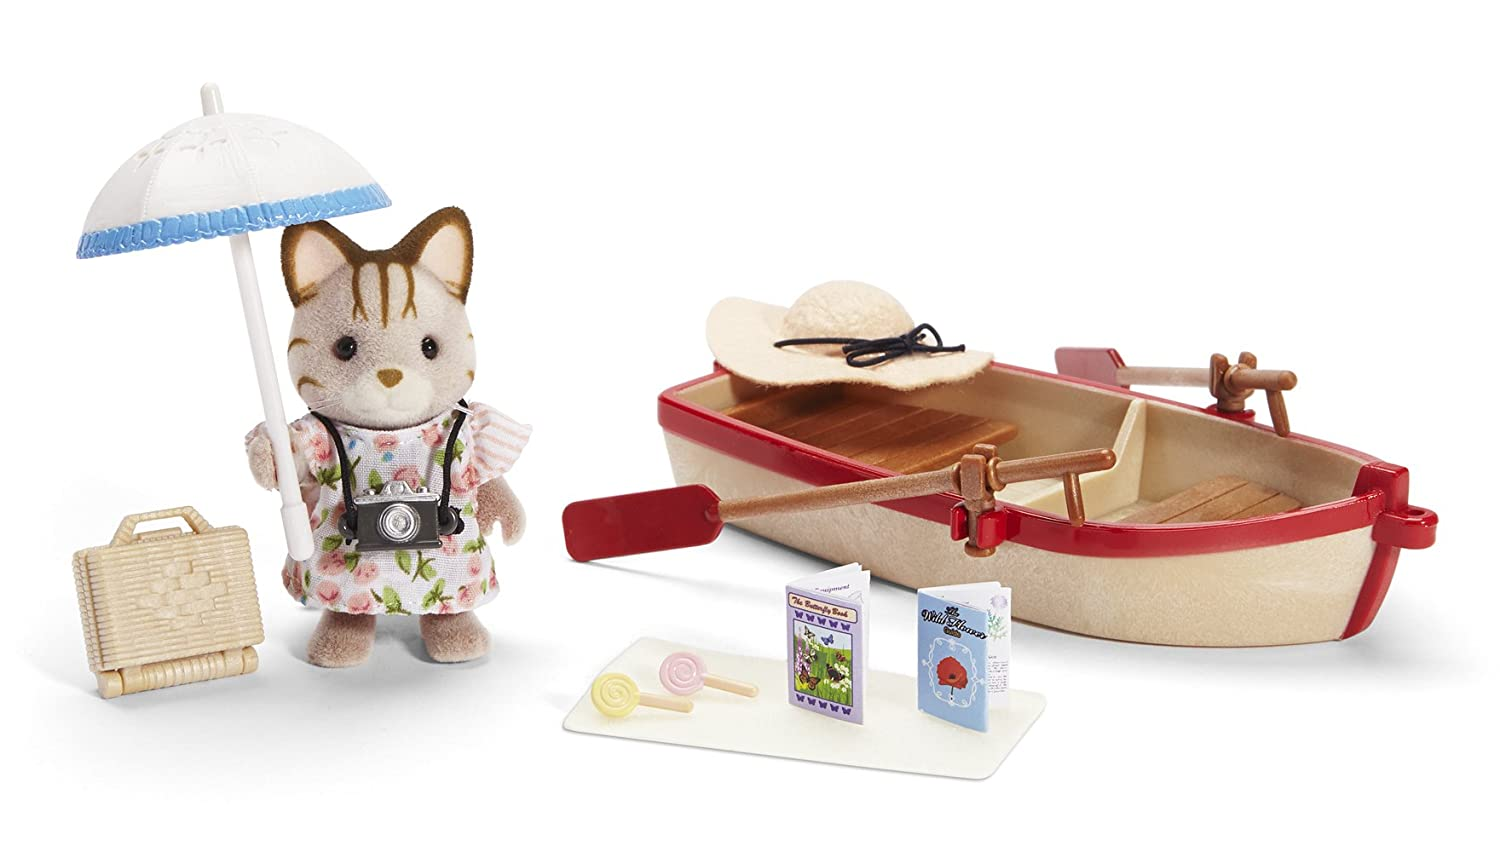 amazon com calico critters rosie u0027s row boat toys u0026 games